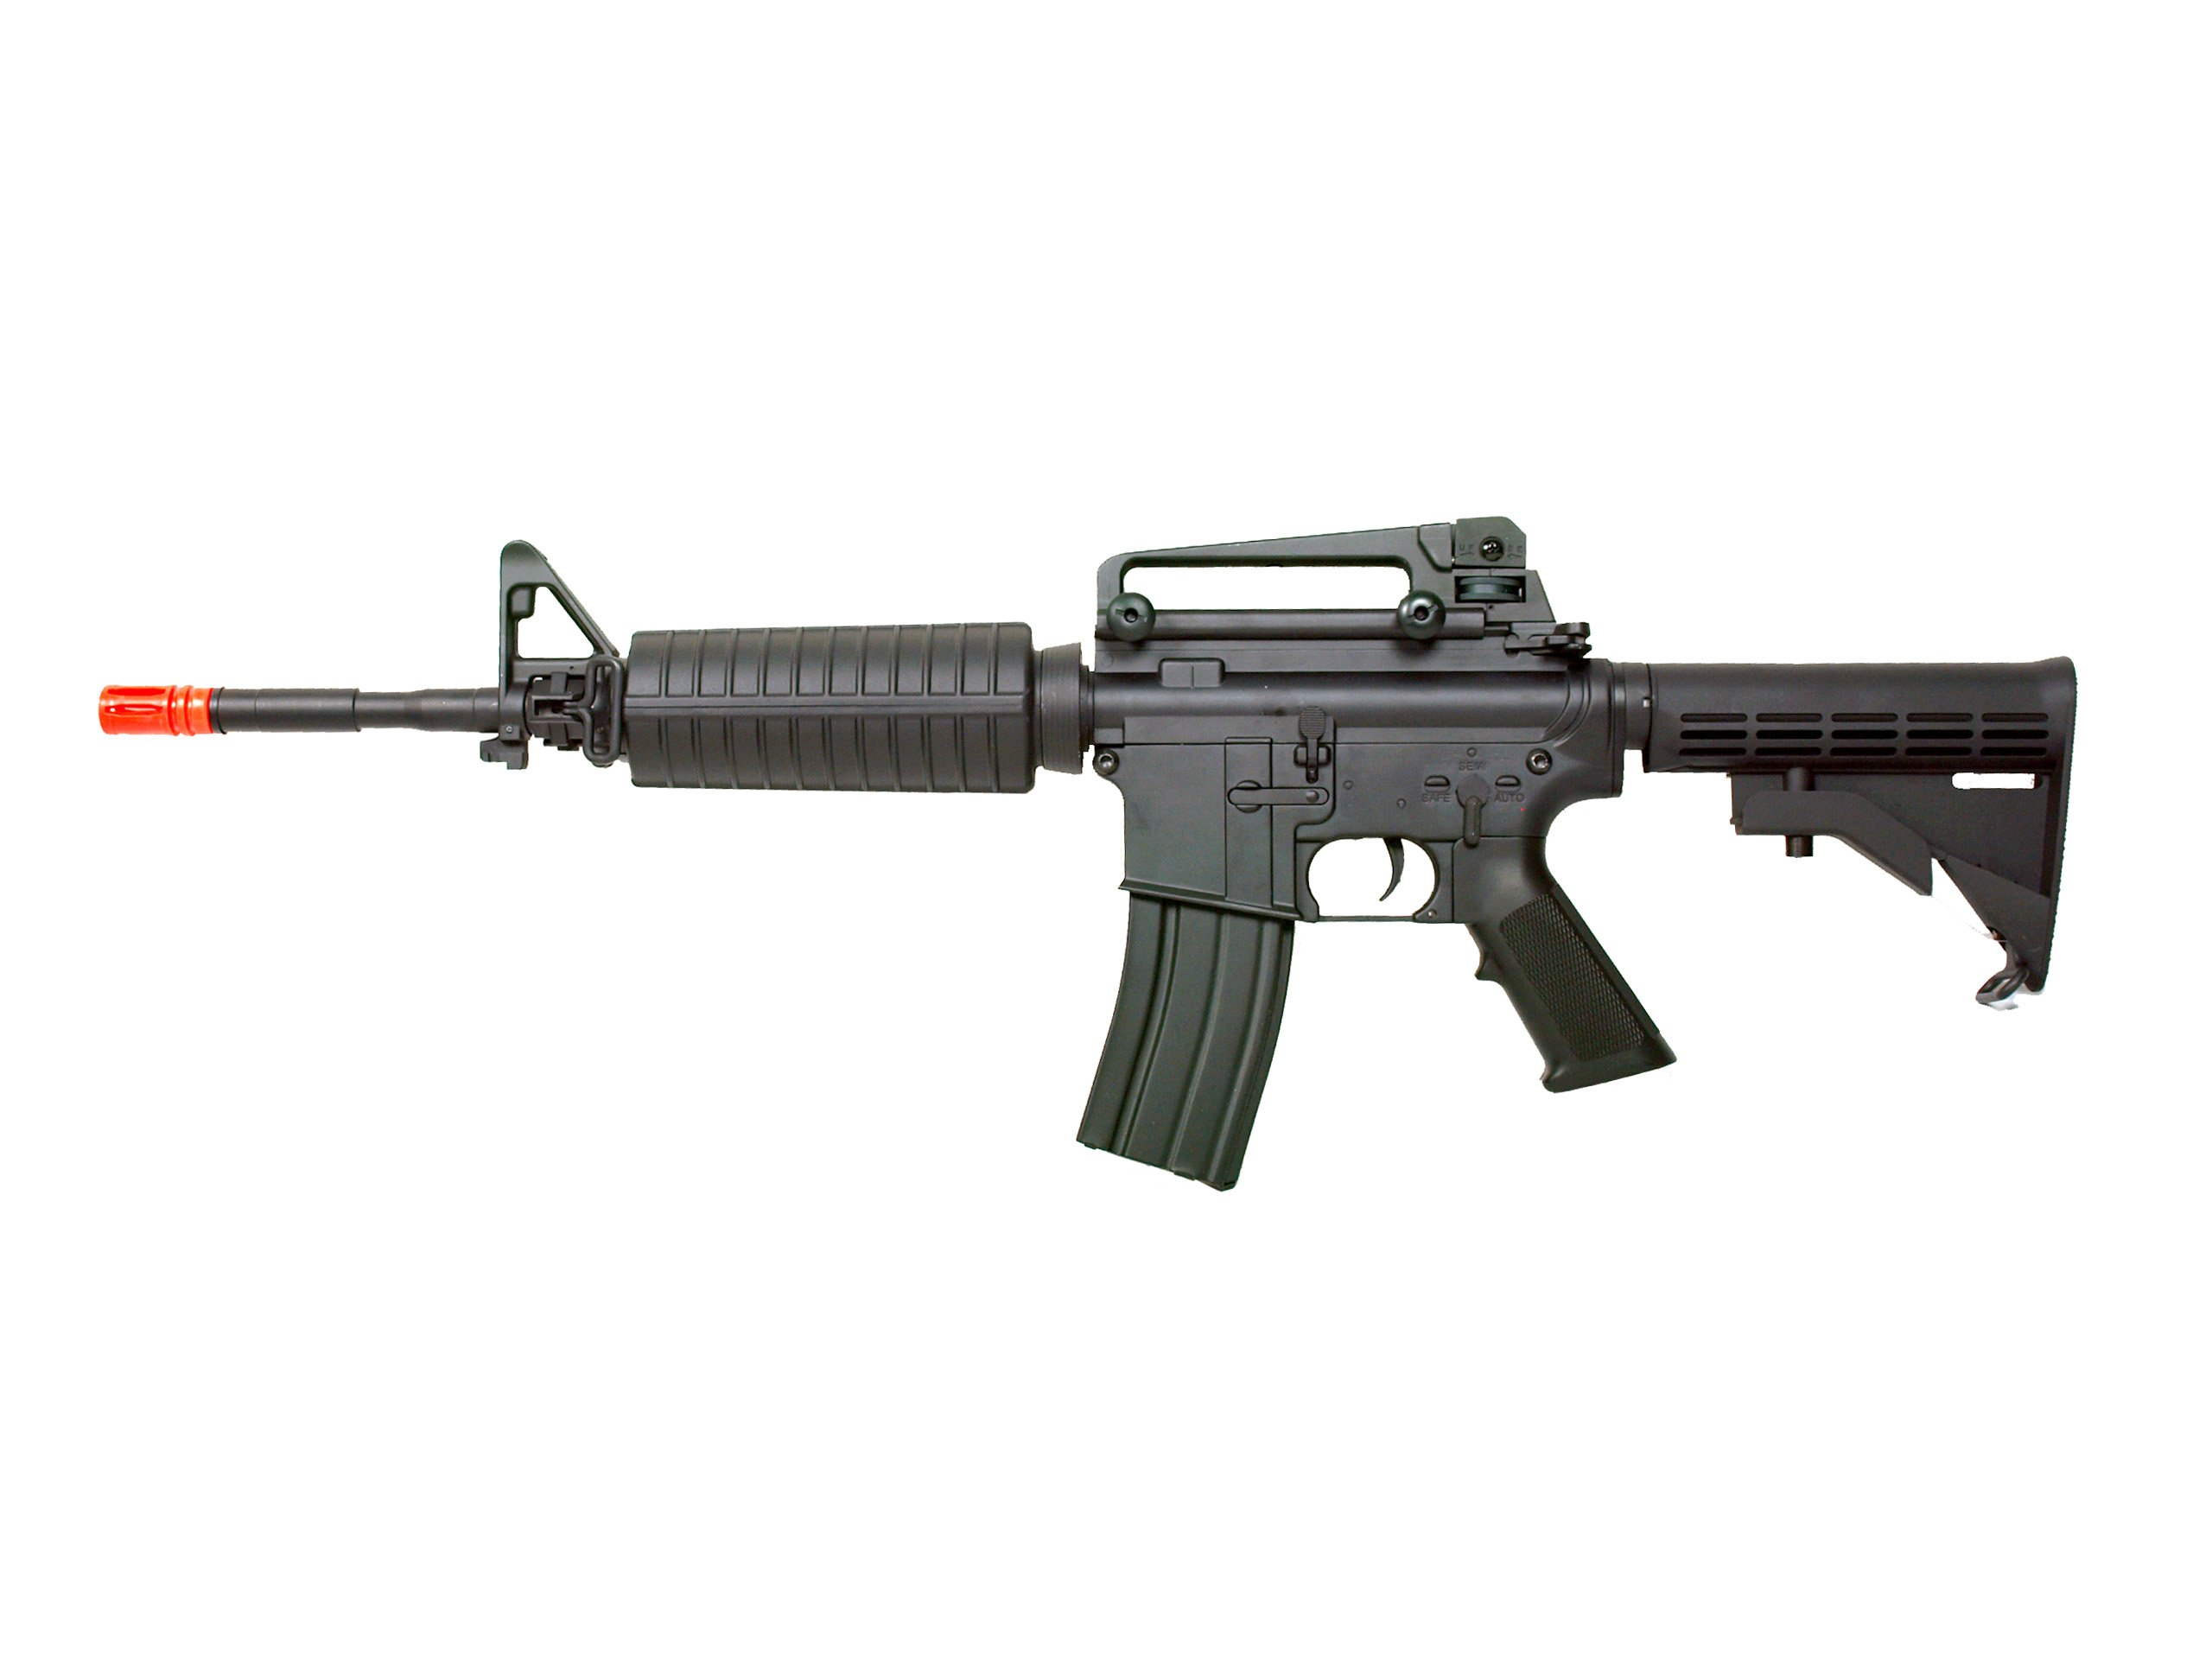 MetalTac JG FB-6604 Electric Airsoft Gun, Full Metal Body, Metal Gearbox Version 2, Auto AEG, Upgraded Powerful Spring 410 Fps with .20g BBs